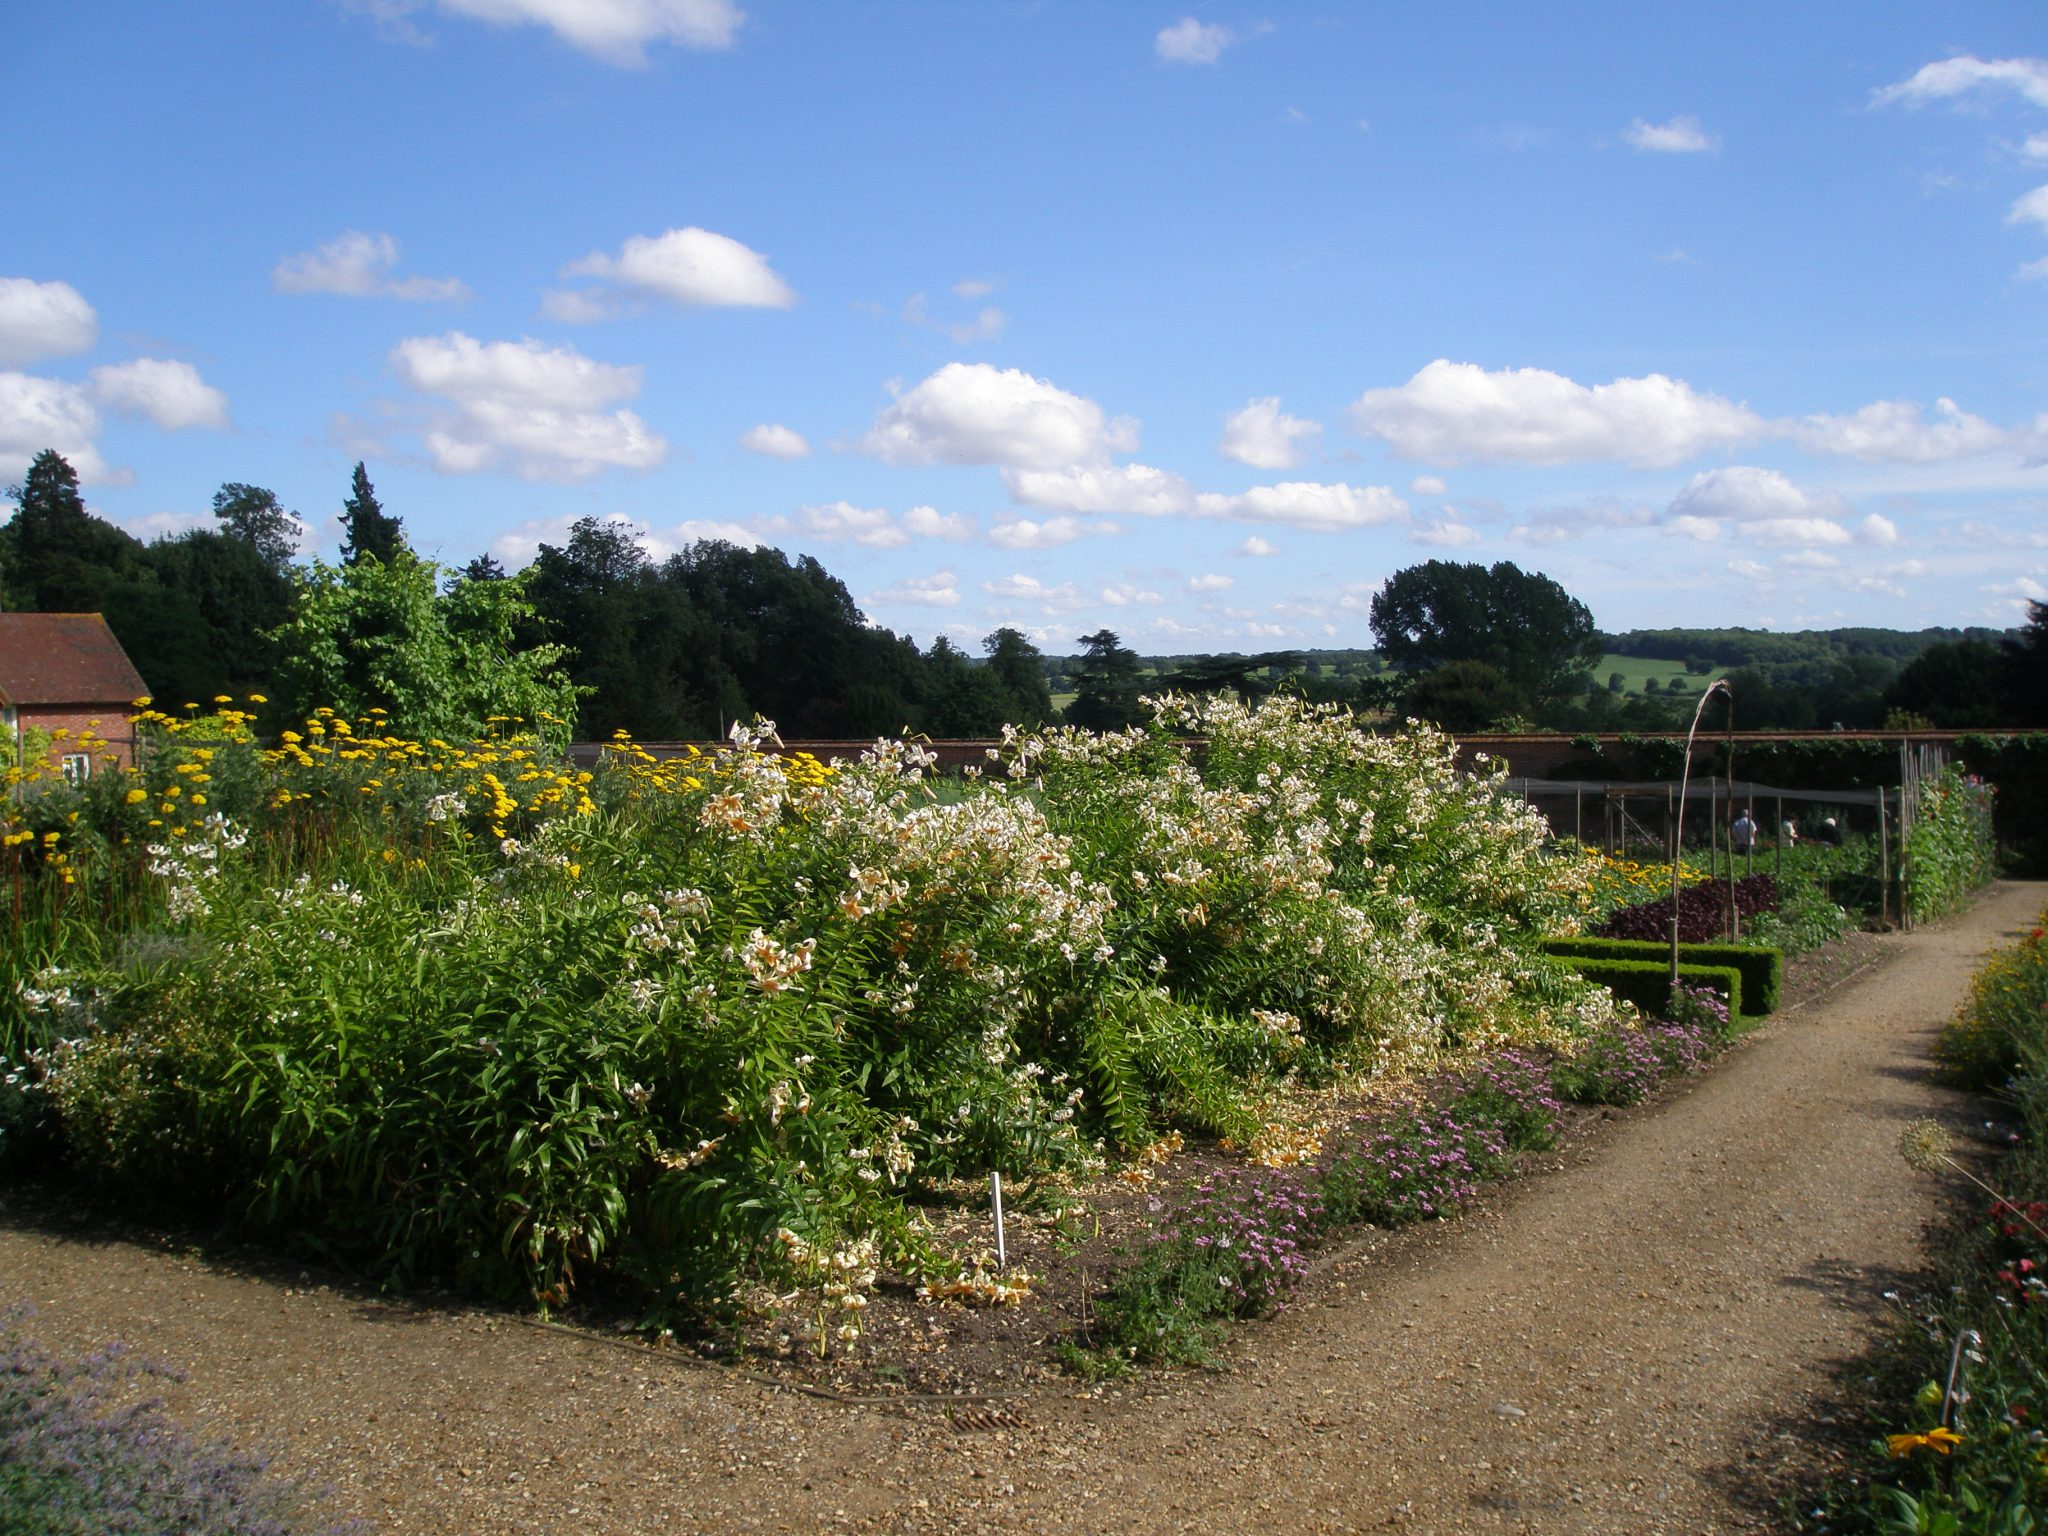 We entered the Walled Garden at its highest poing, where tall lilies were just beginning to shed their blossoms.